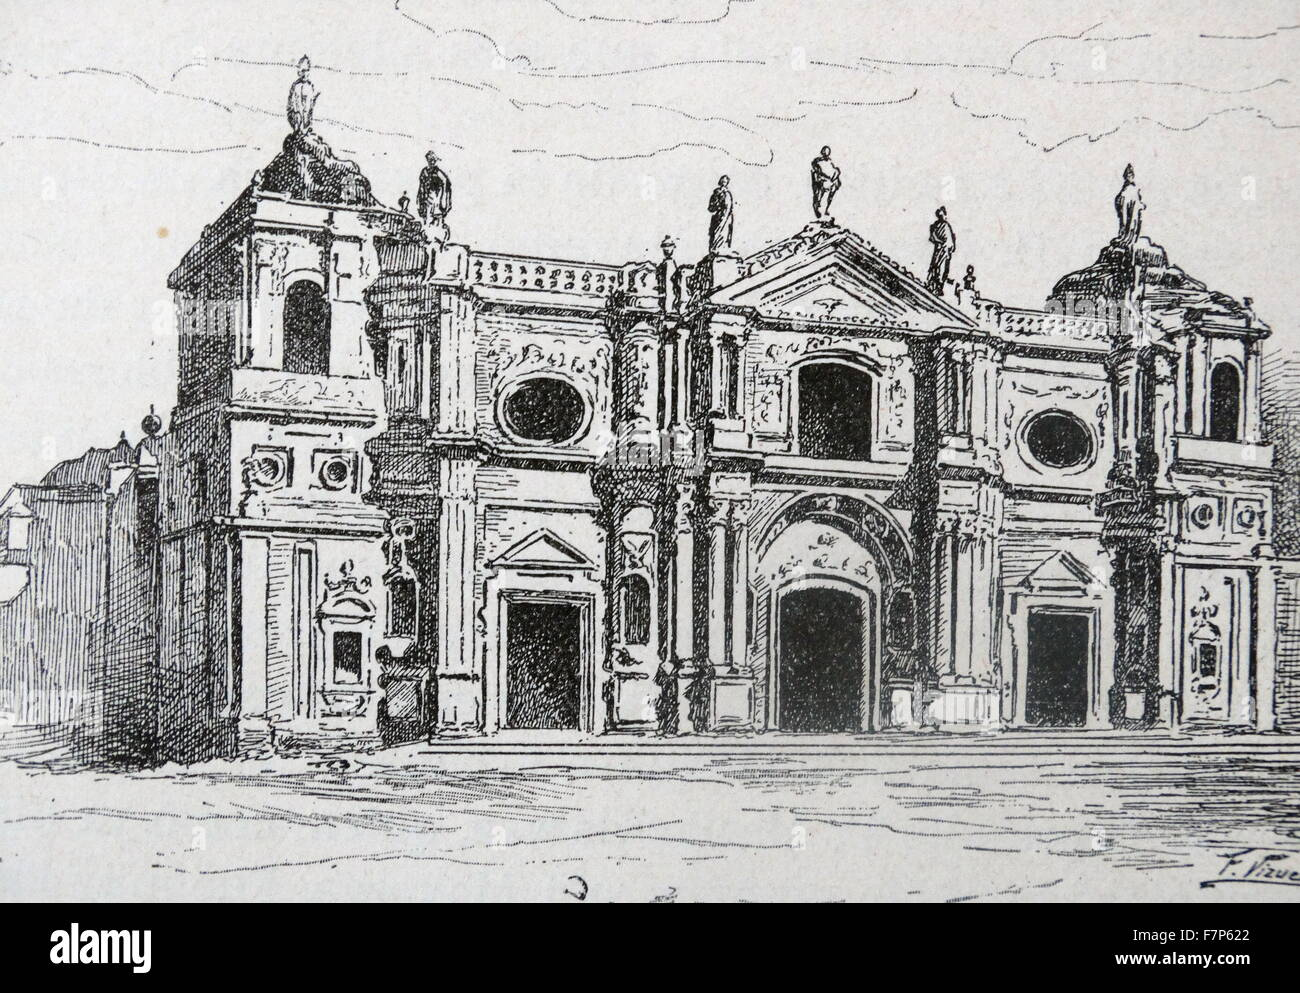 Illustration of the Santo Domingo Monastery. a ruined monastery in Antigua Guatemala, Guatemala. Dated 17th Century - Stock Image